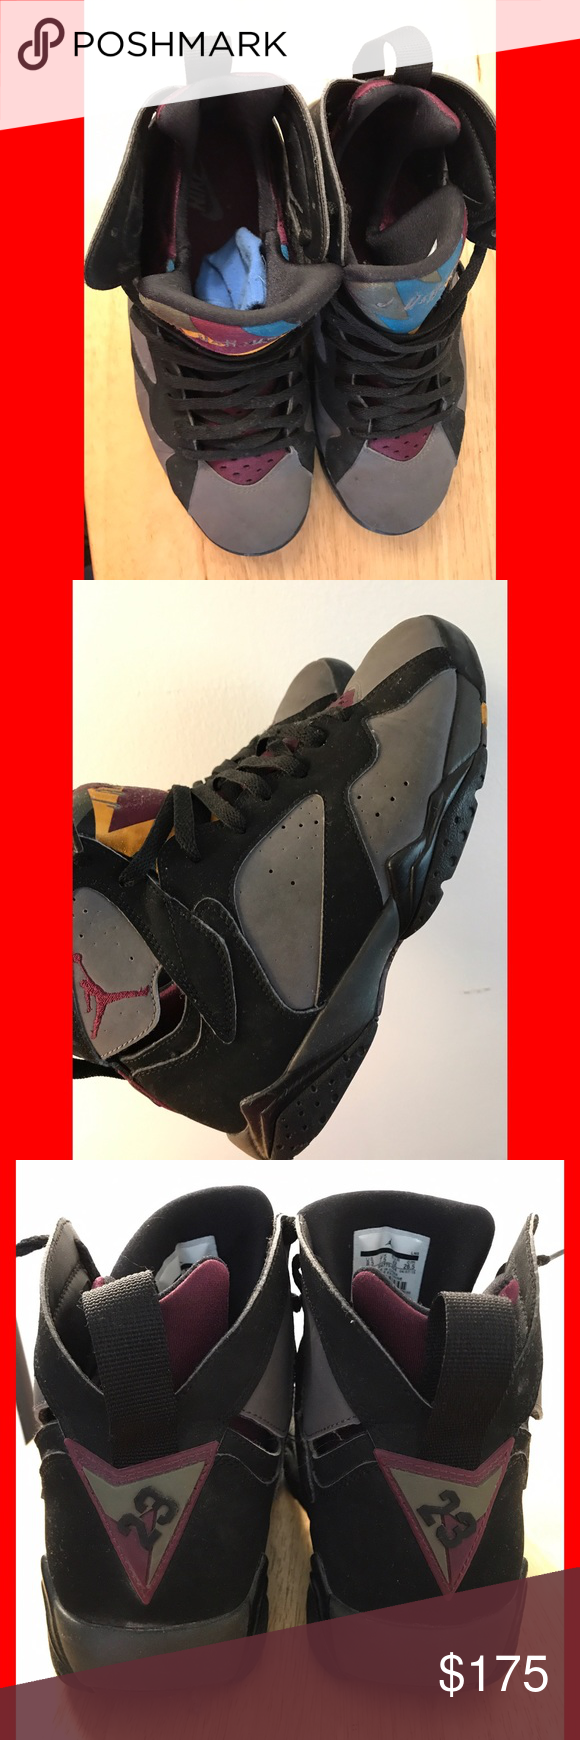 Air Jordan Retro 7 Bordeaux Size 8.5 in great condition, no flaws just needs some cleaning. ✨ALL MY SNEAKERS ARE AUTHENTIC✨ Jordan Shoes Sneakers